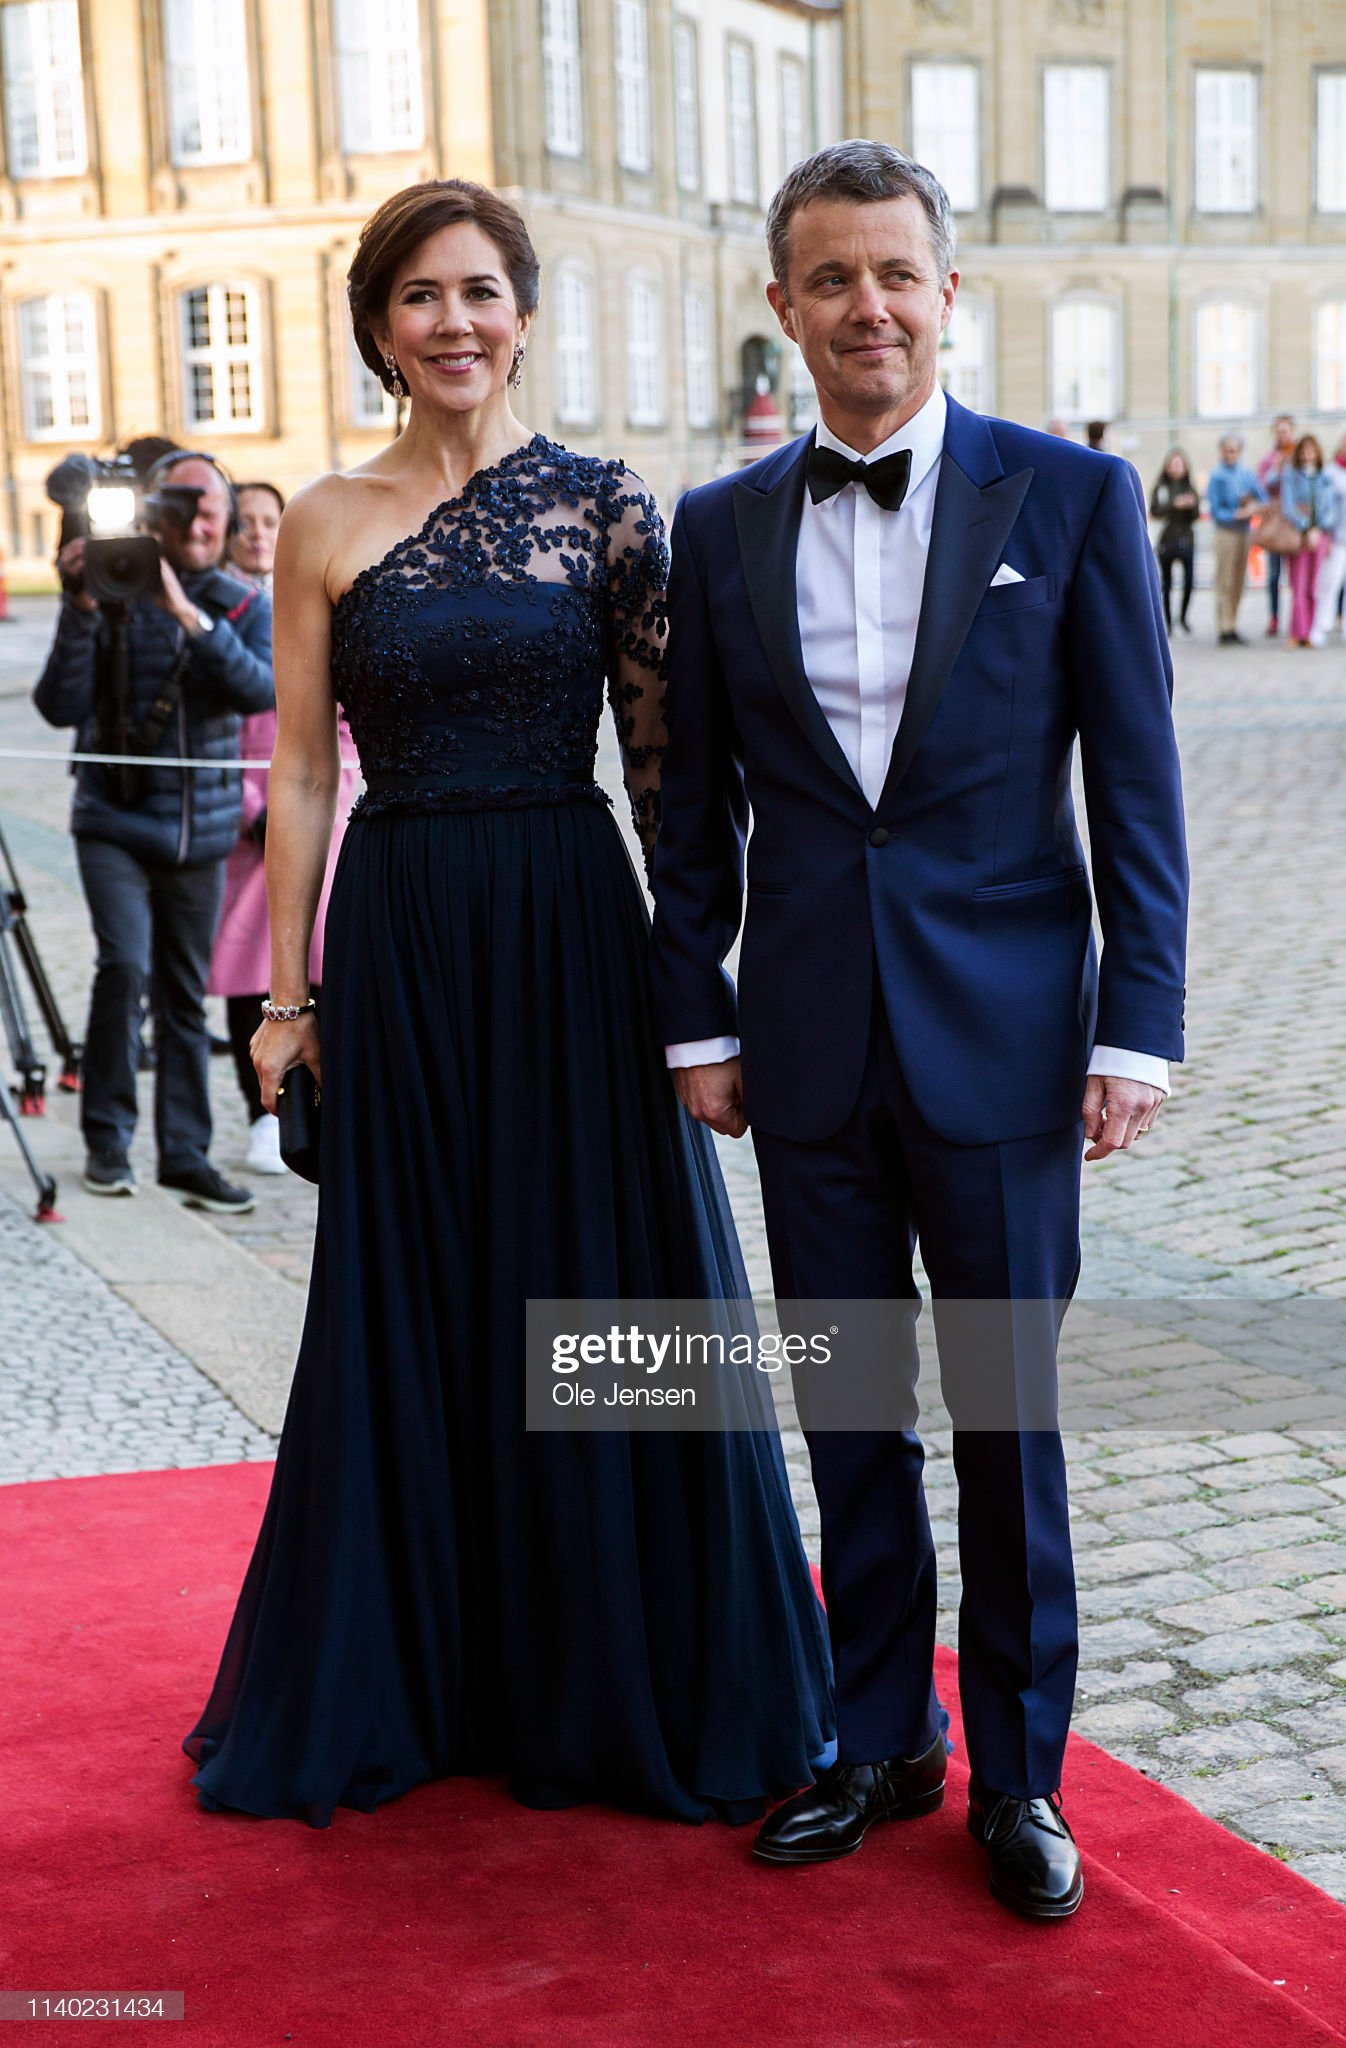 crown-prince-frederik-of-denmark-and-crown-princess-mary-arrive-at-picture-id1140231434